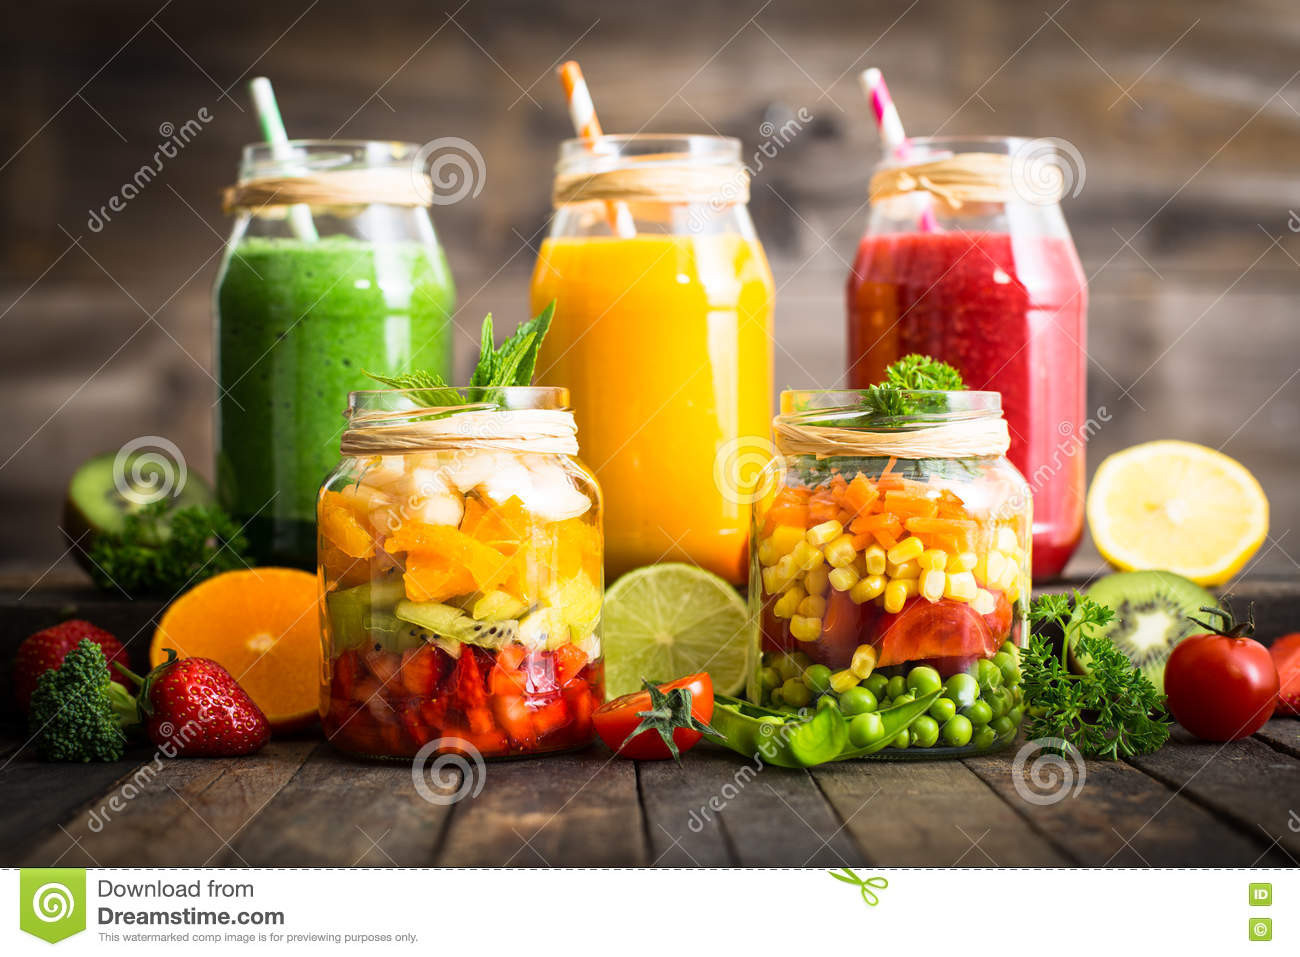 Healthy Fruit And Vegetable Smoothie Recipes  Healthy Fruit And Ve able Salad And Smoothies Stock